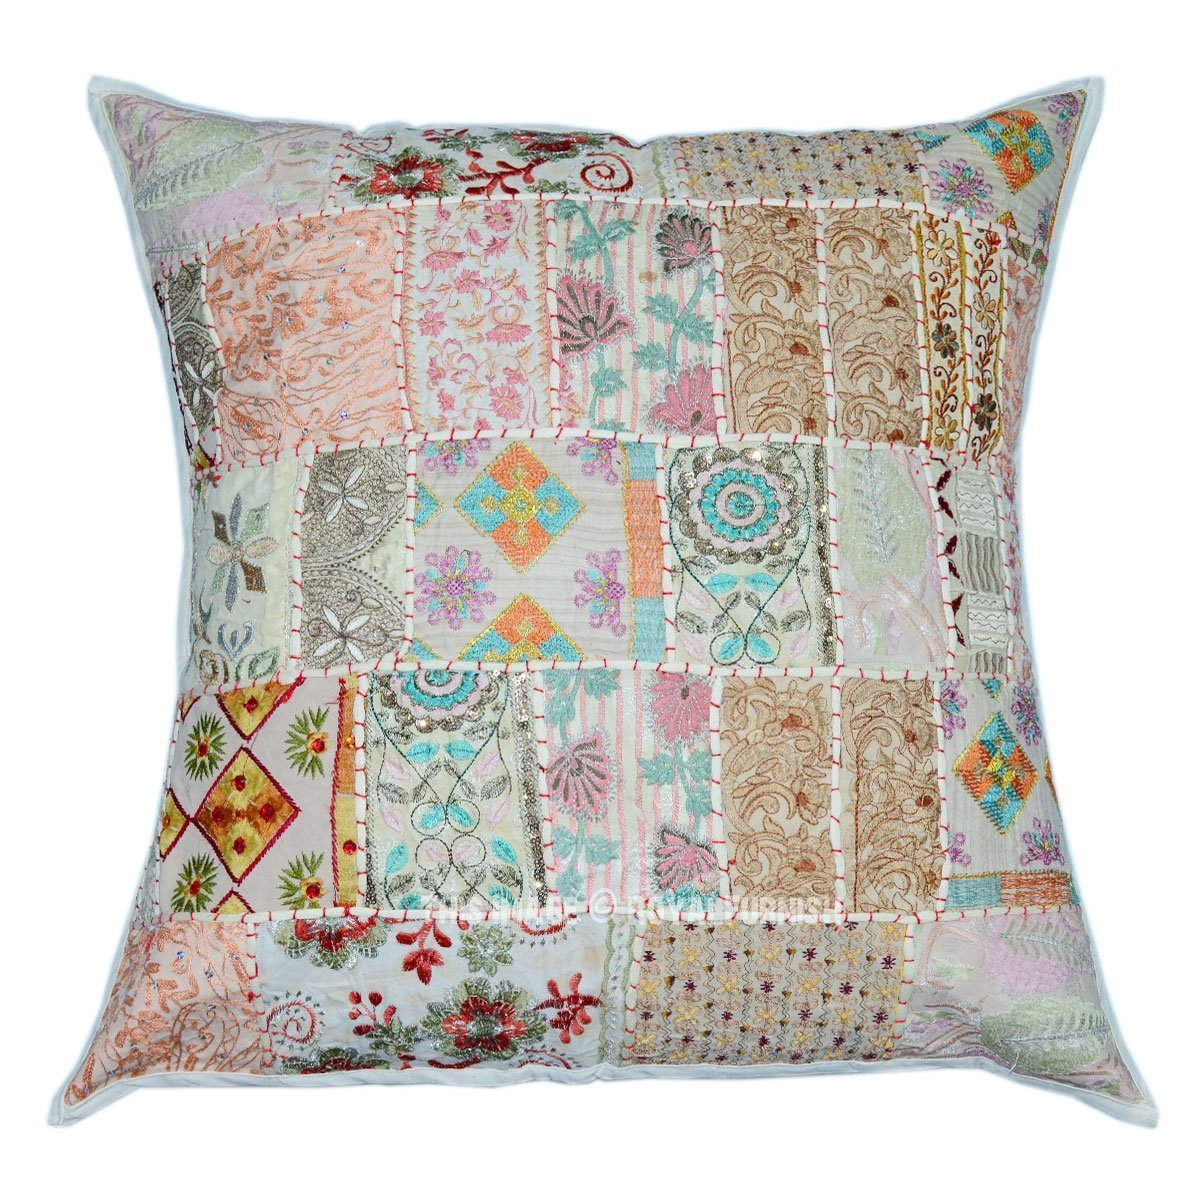 Visit us for a wide range of quality and comfortable cushions and covers at low prices. We have cushions in lots of shapes, sizes, styles and colors.